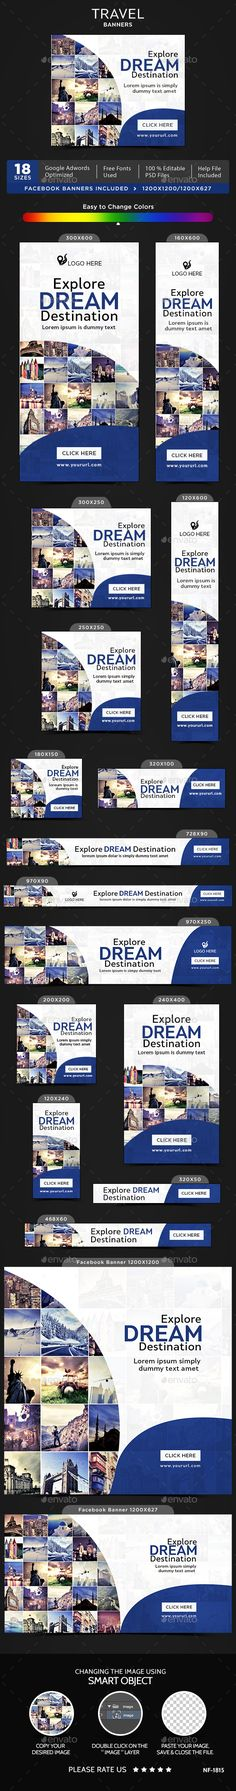 Travel Banners — Photoshop PSD #banners #social media • Available here → https://graphicriver.net/item/travel-banners/20062375?ref=pxcr